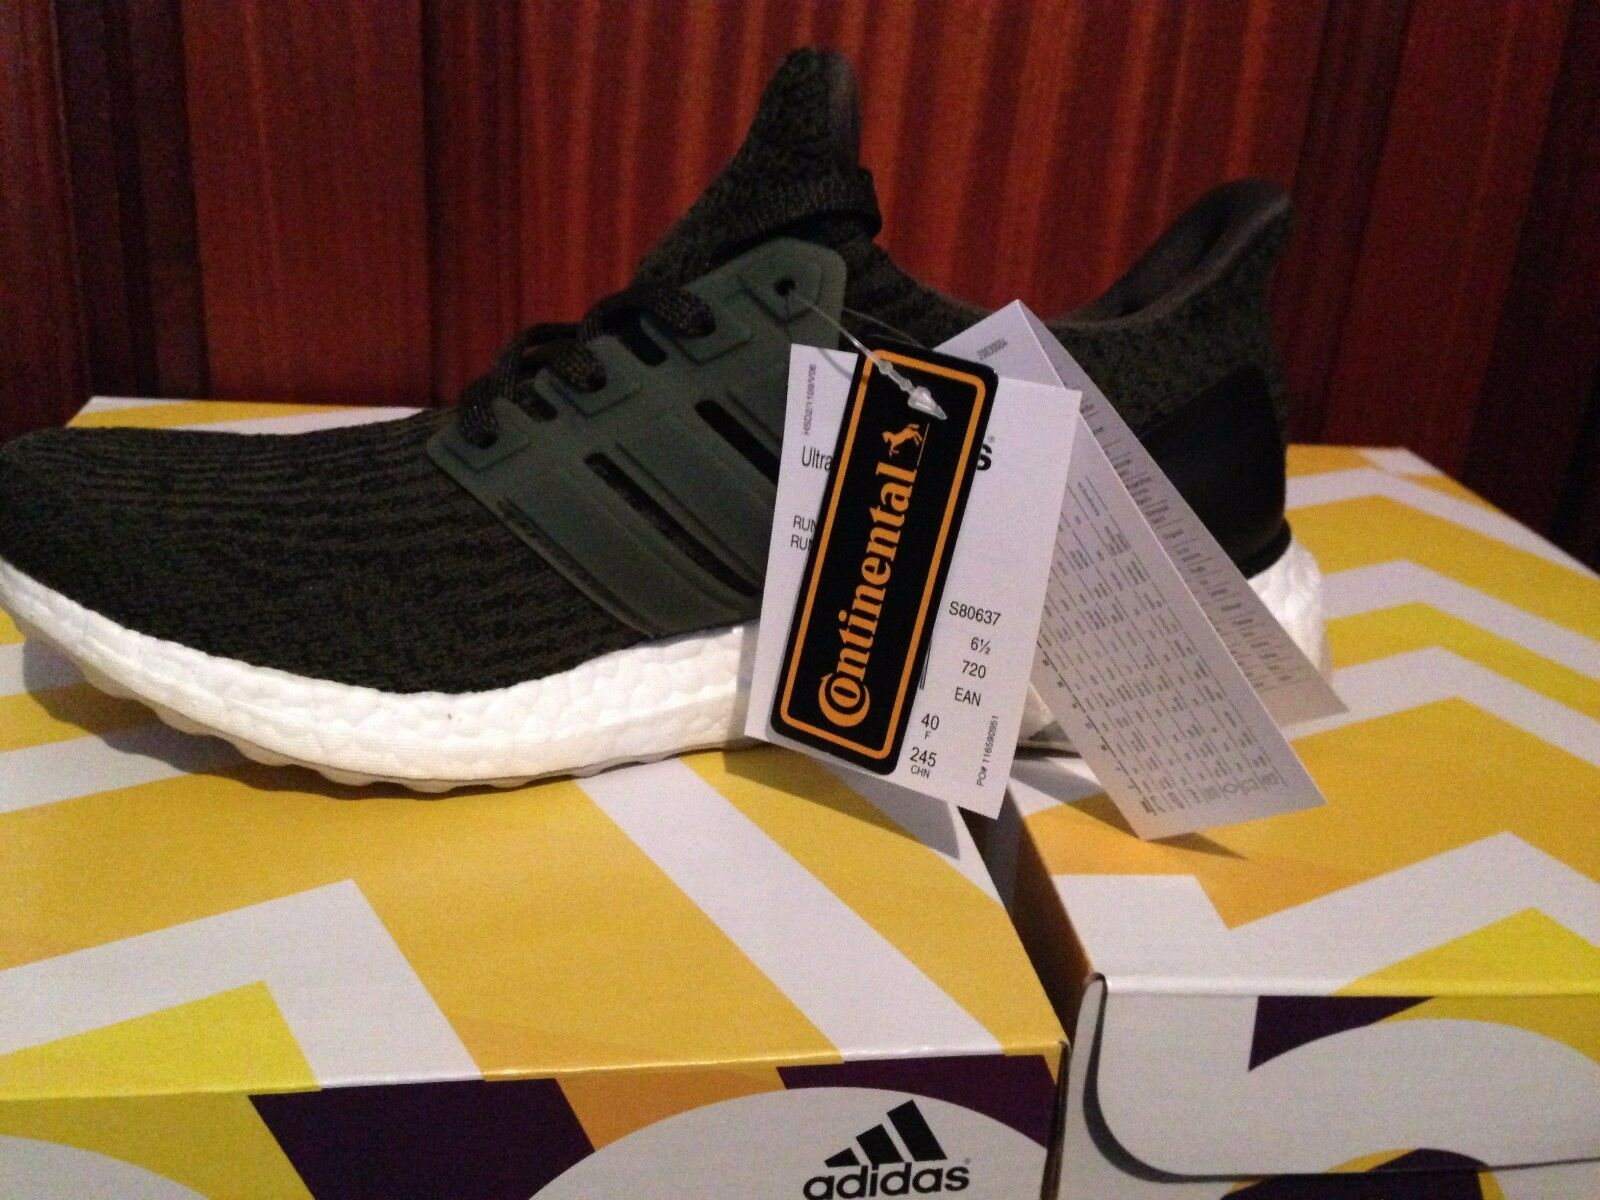 Adidas Ultra Boost 3.0 Night Cargo     Olive S80637 -  US 7 and US 7.5 - SOLD OUT 0265b3